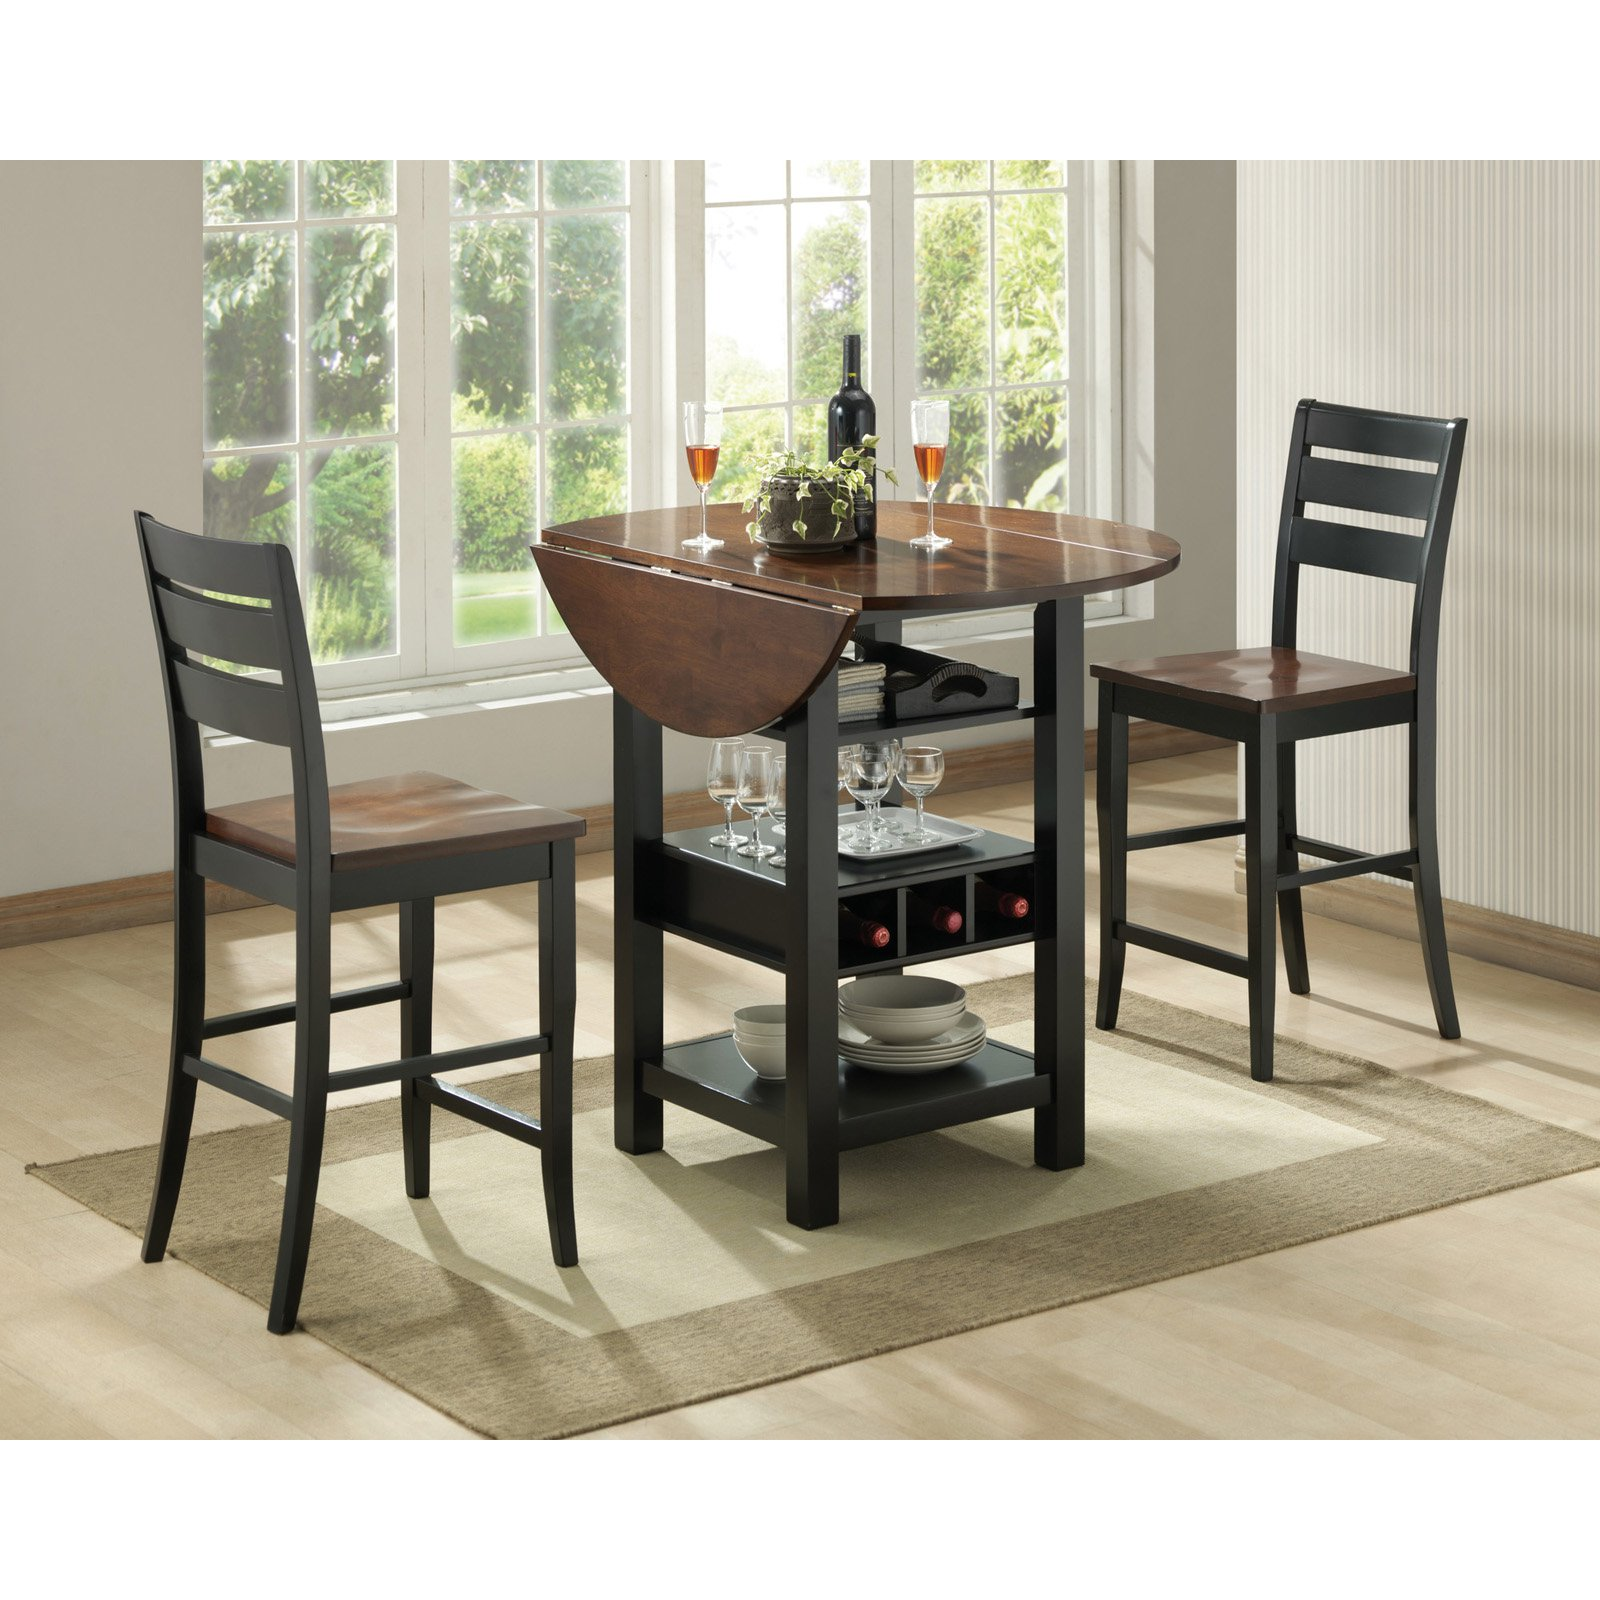 Sunset Trading Quincy 3 Piece Black u0026&; Cherry Pub Table Set - Walmart.com  sc 1 st  Walmart & Sunset Trading Quincy 3 Piece Black u0026amp; Cherry Pub Table Set ...